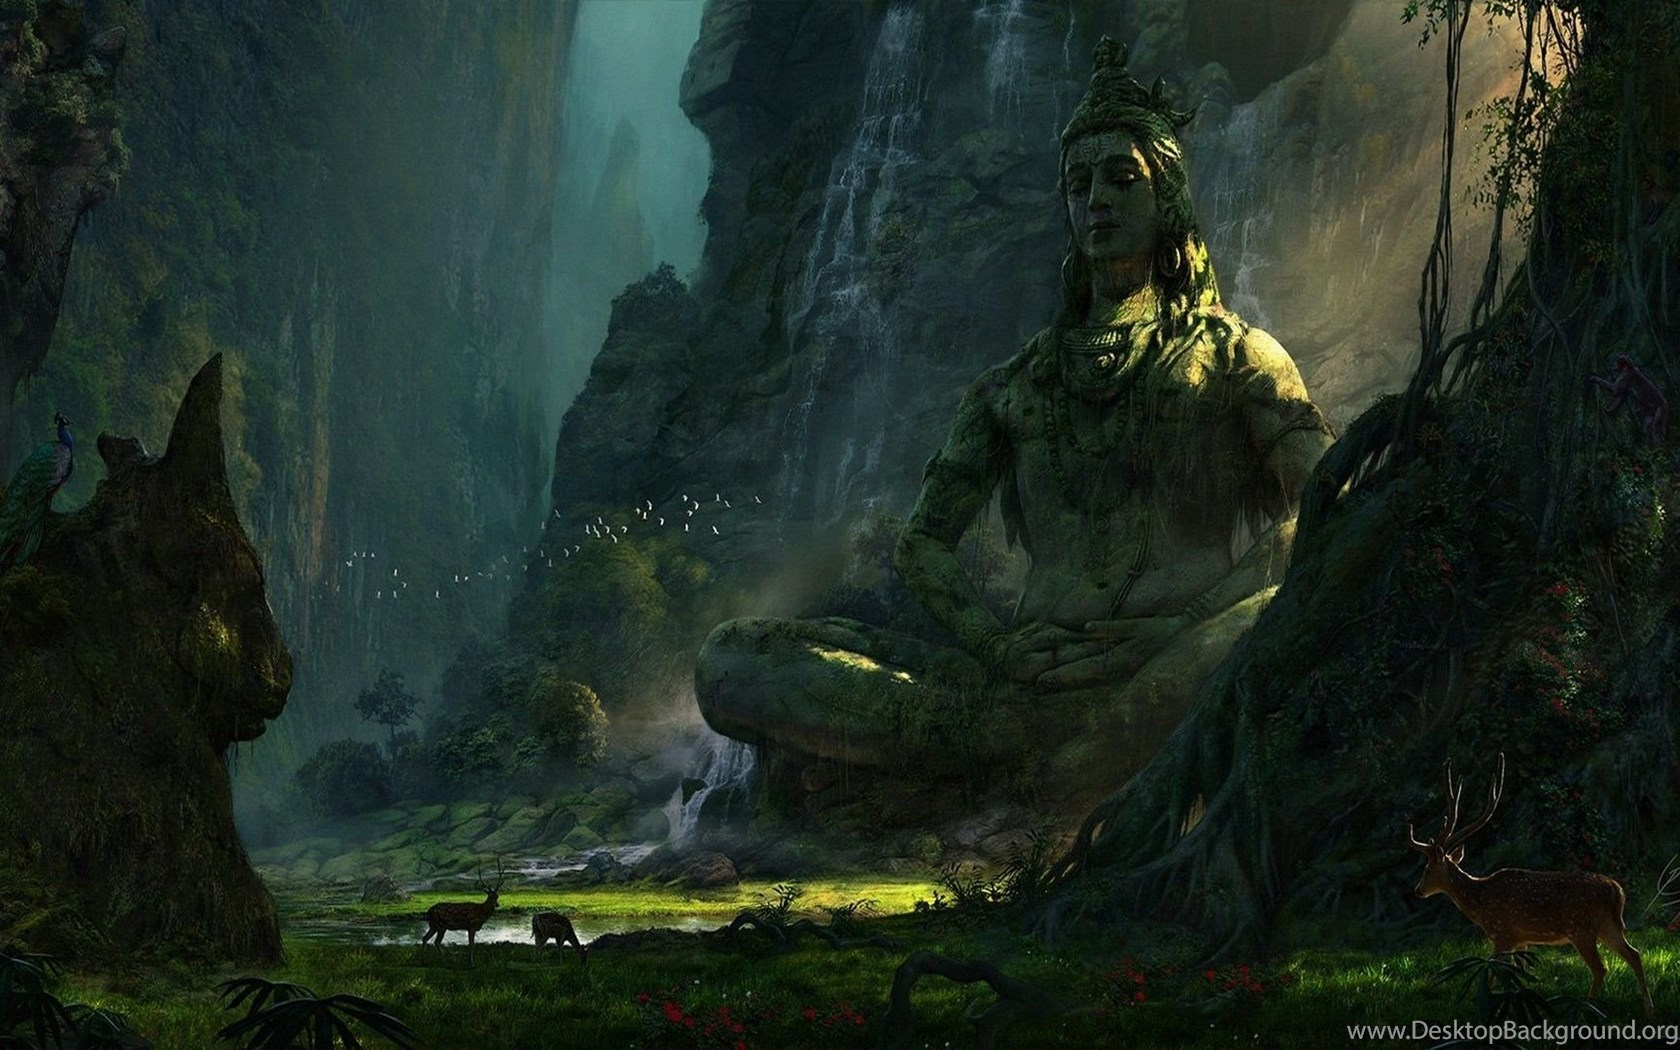 Lord Shiva New Hd Wallpapers Download Desktop Background: Unexplored Ruins (Lord Shiva). : Wallpapers Desktop Background